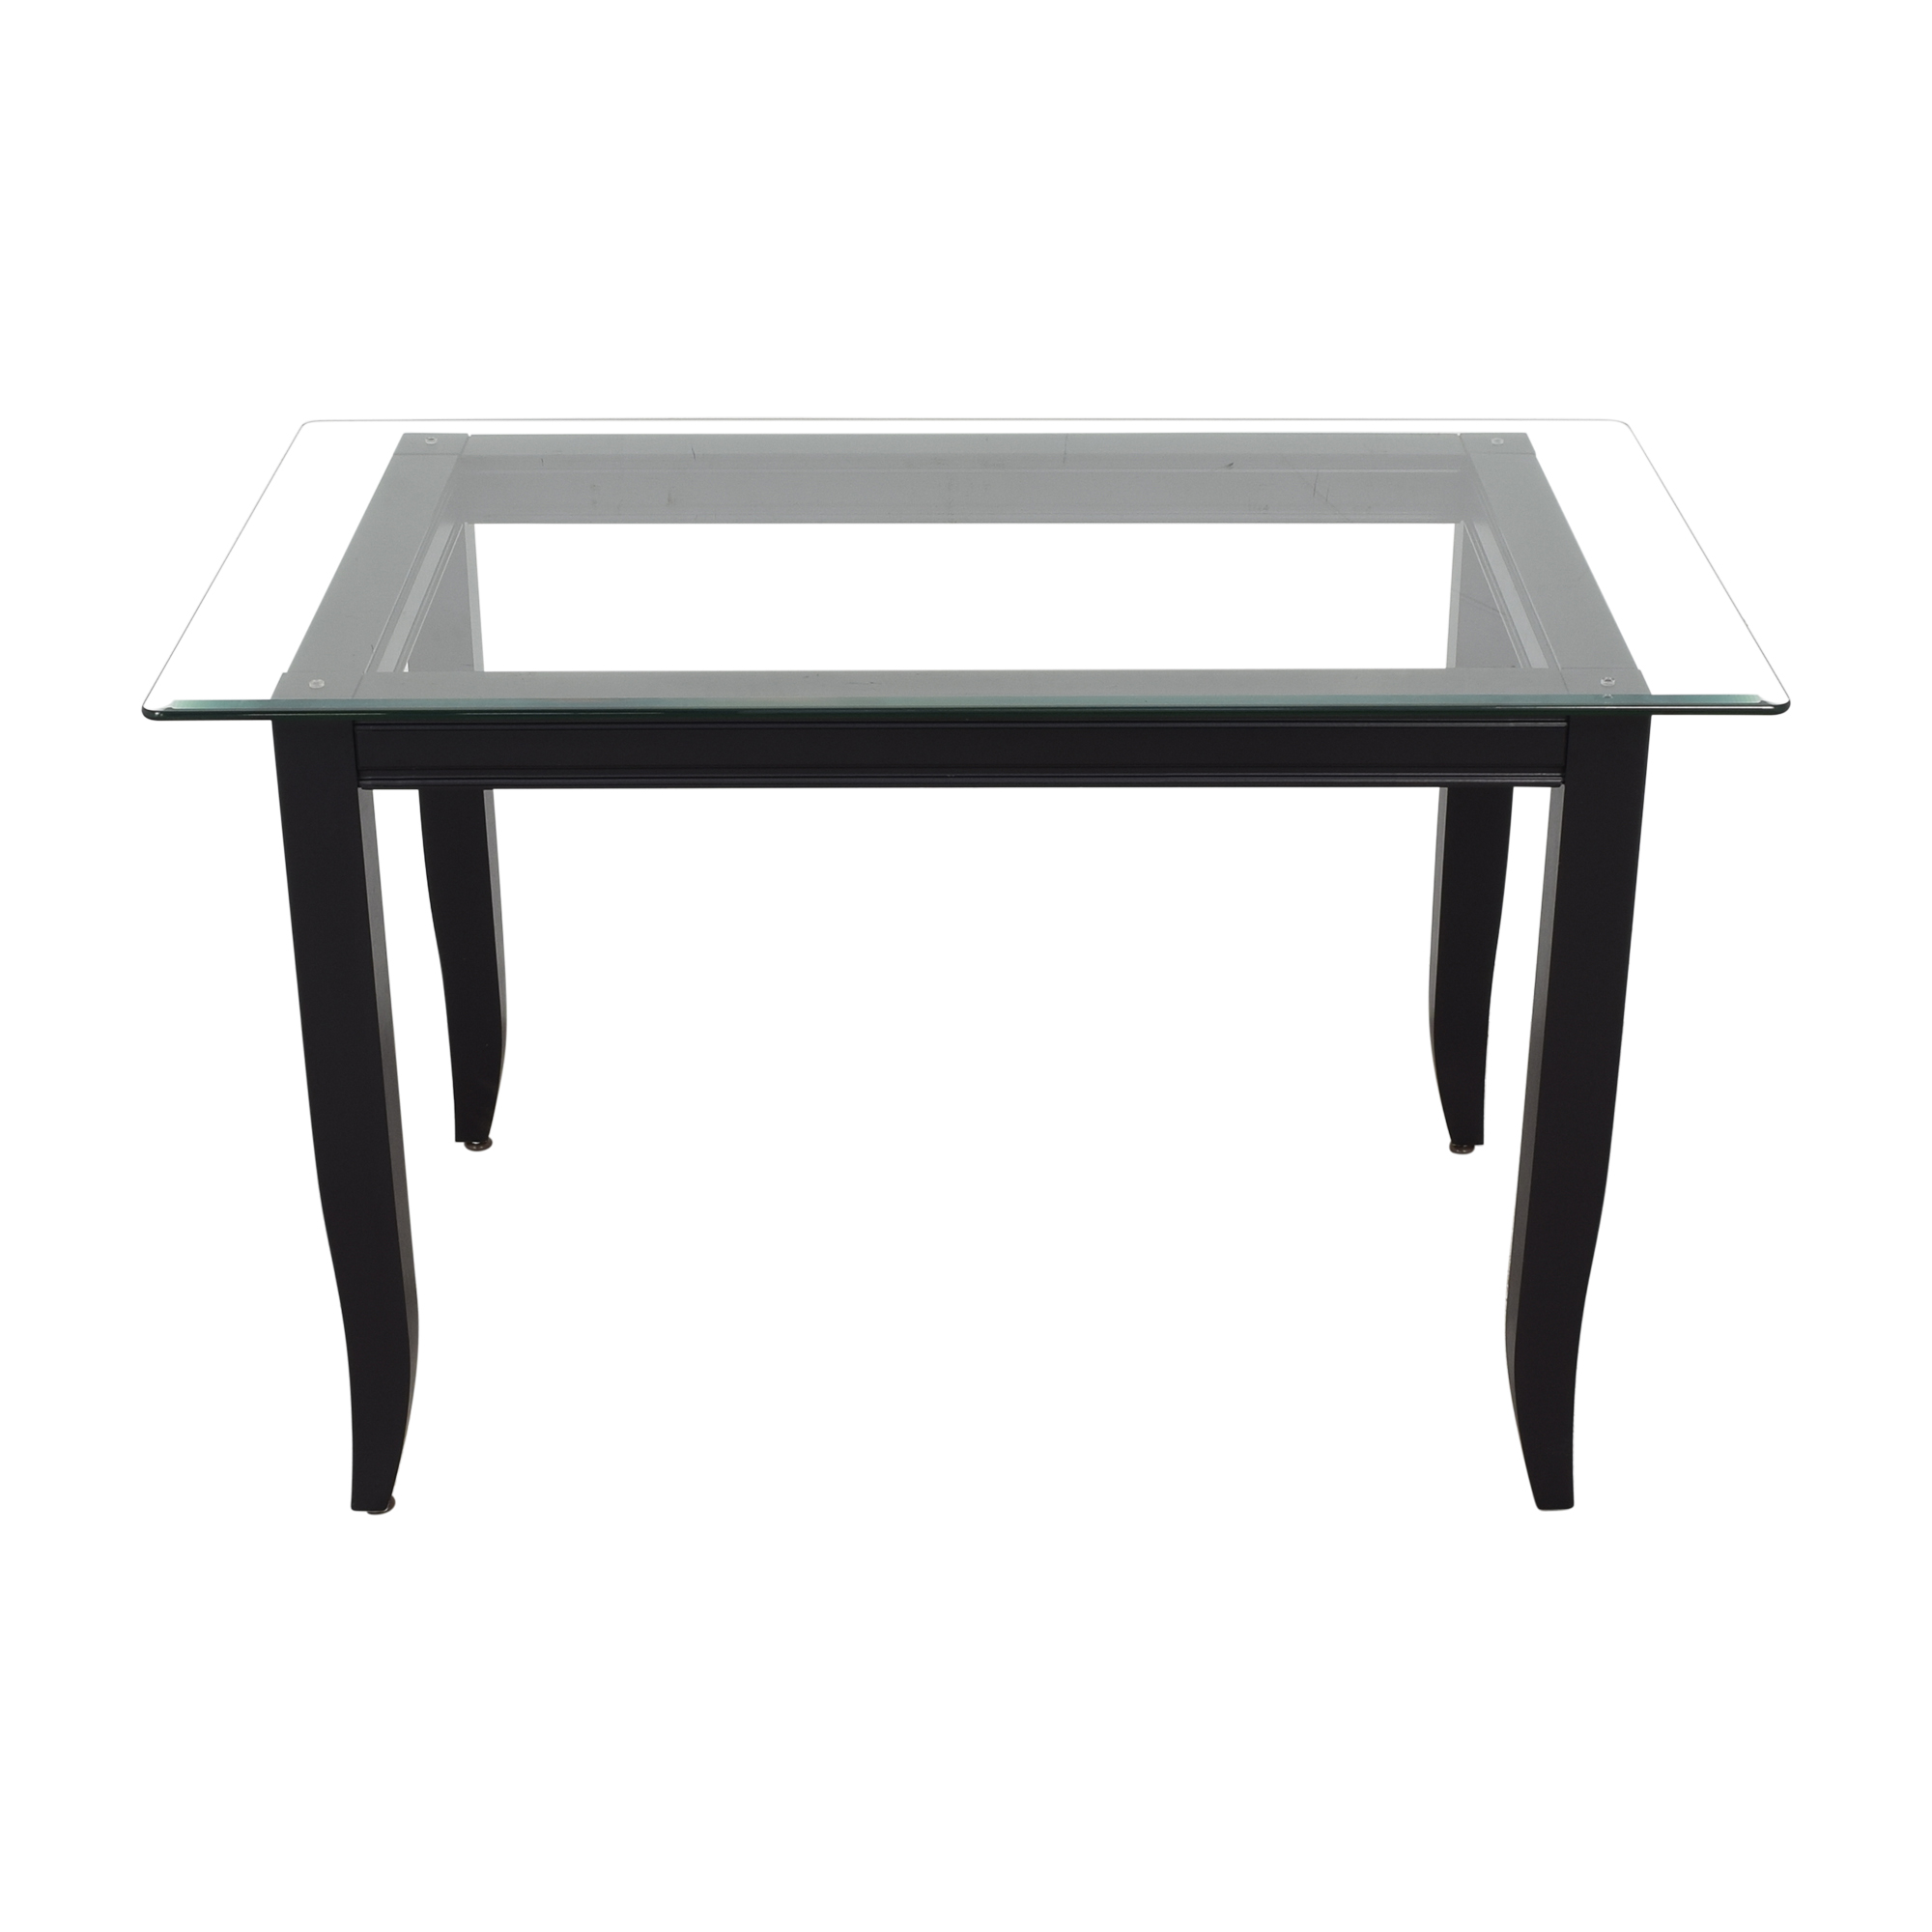 Canadel Canadel Counter Height Table second hand